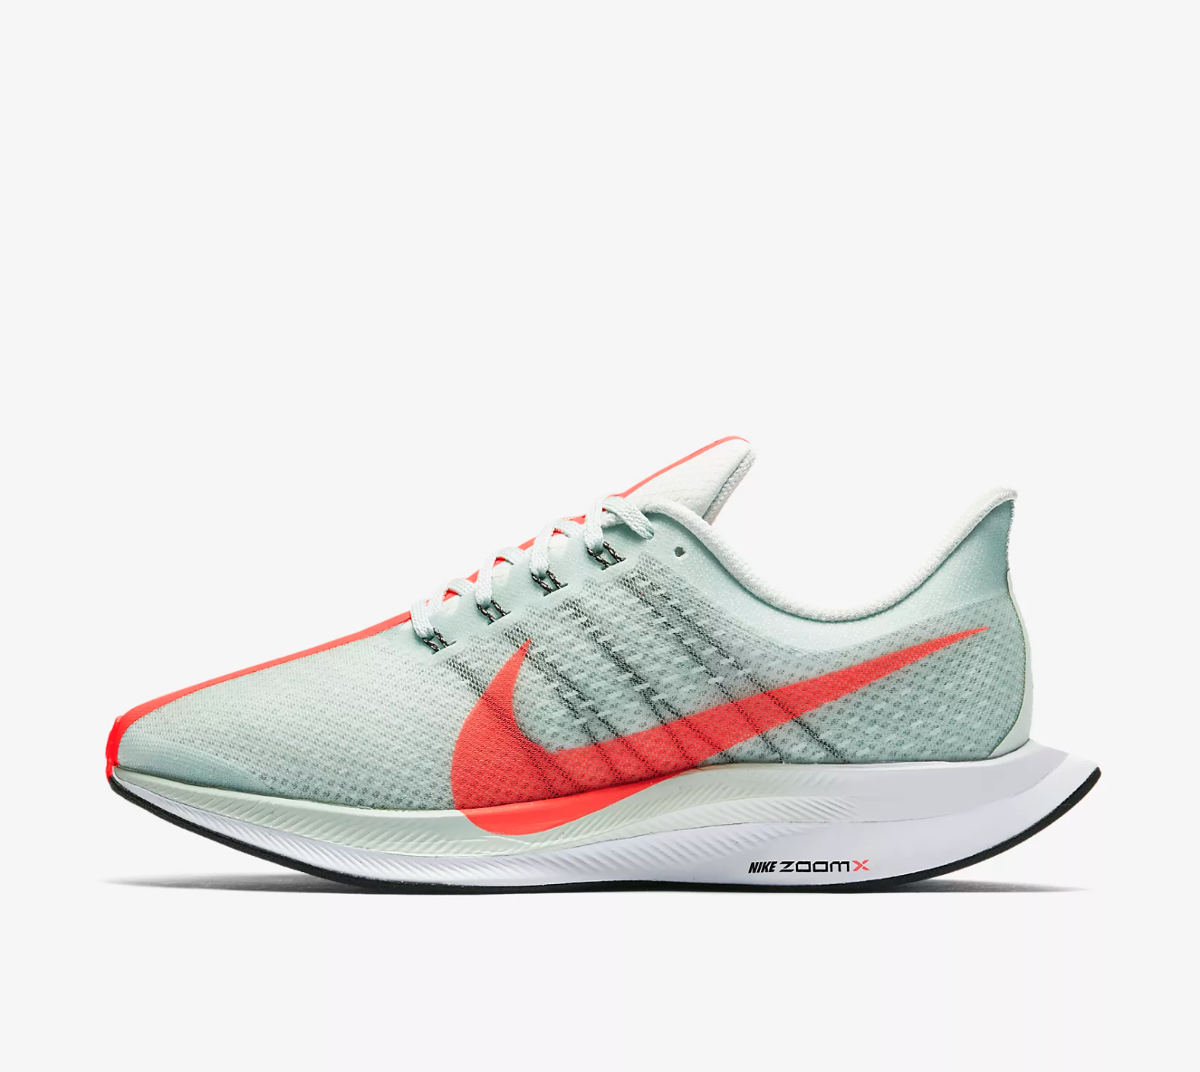 Relaxed Nike Air zoom Pegasus 35 Shield Wolf Grey Black White Men's Running Shoes Sneakers